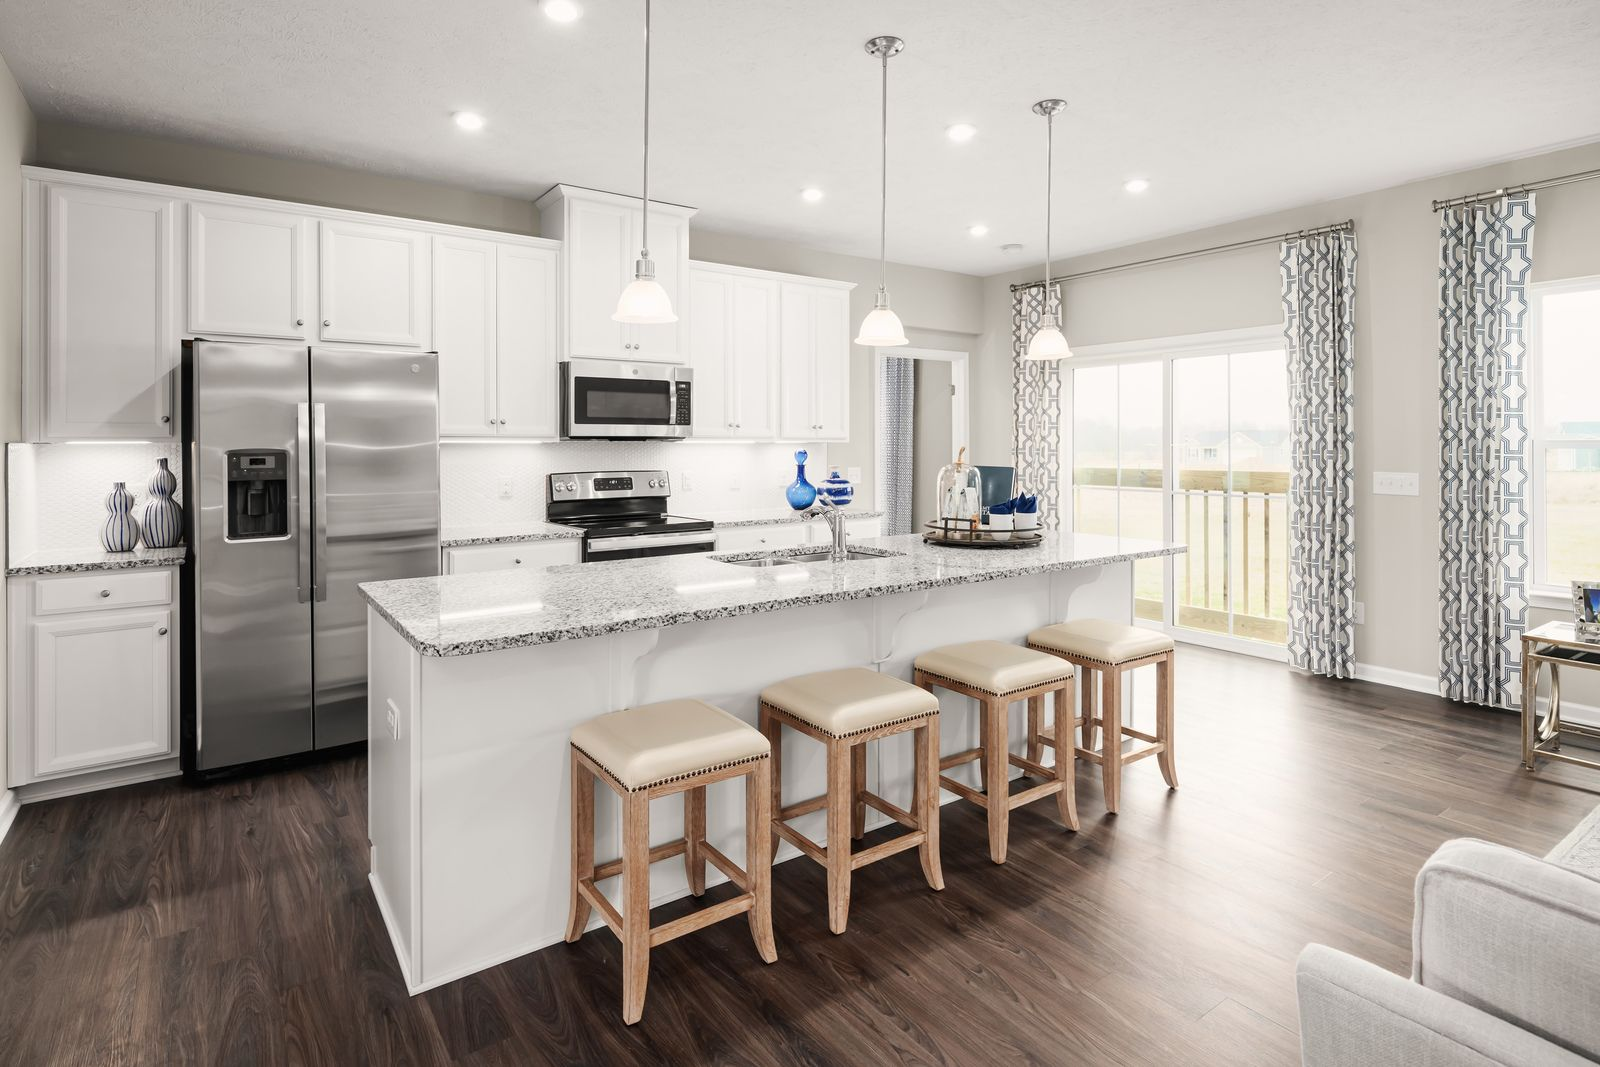 Kitchen featured in the Aviano By Ryan Homes in Sussex, DE